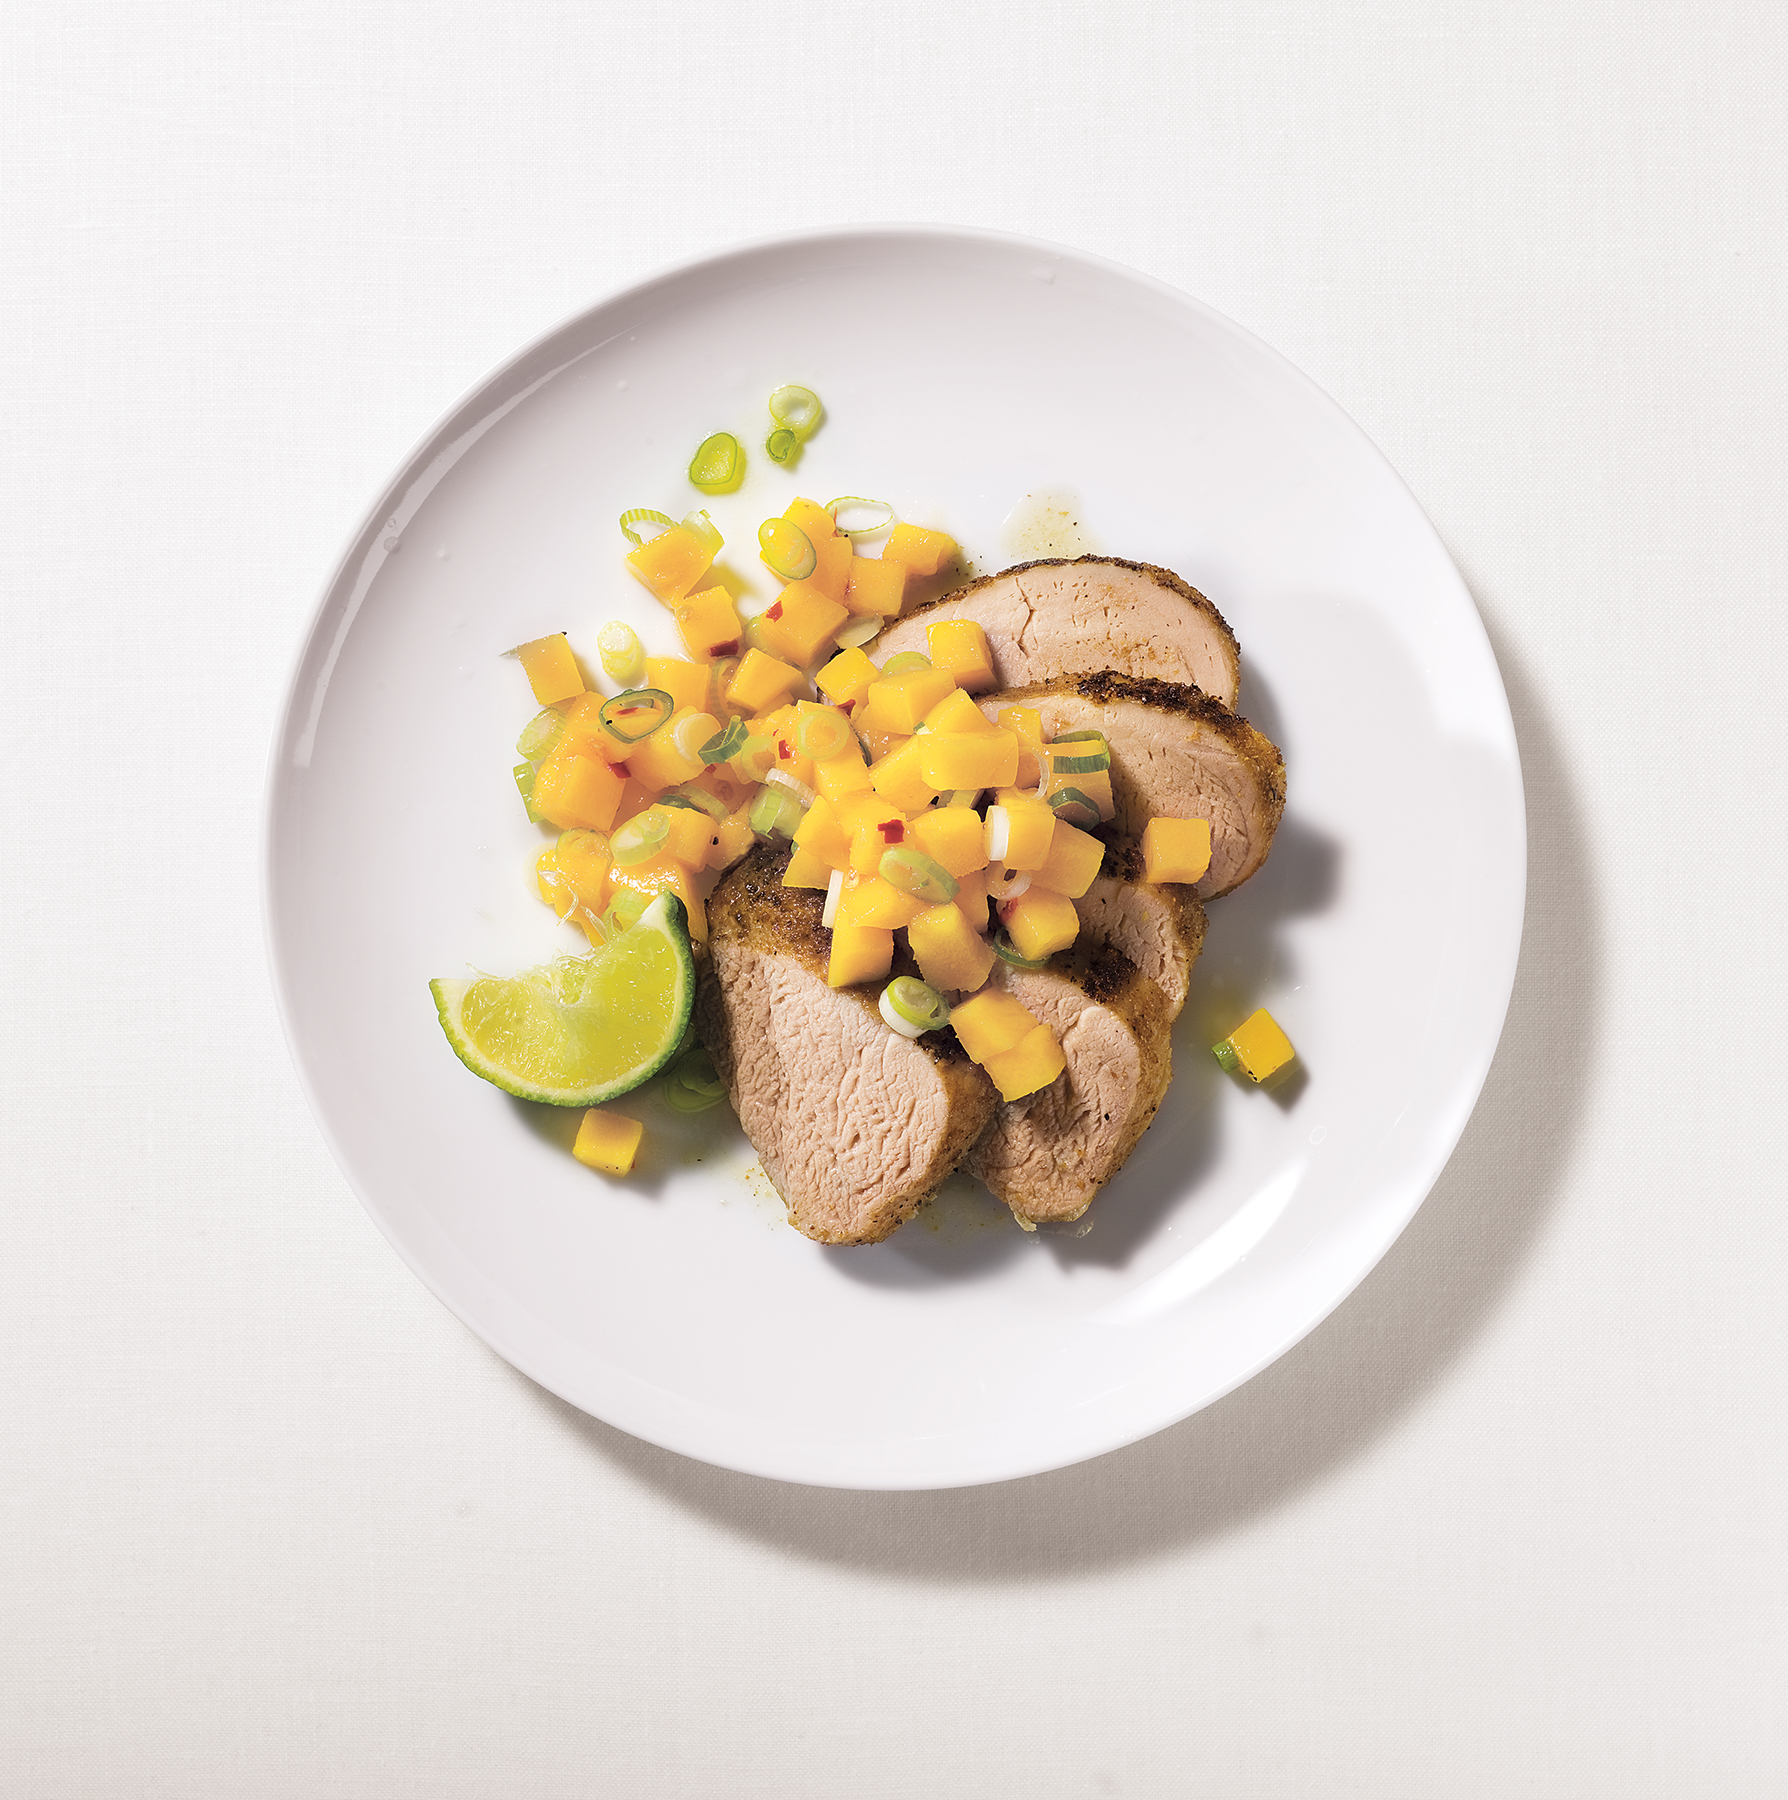 Fast Recipes: Caribbean Tenderloin With Mango Salsa